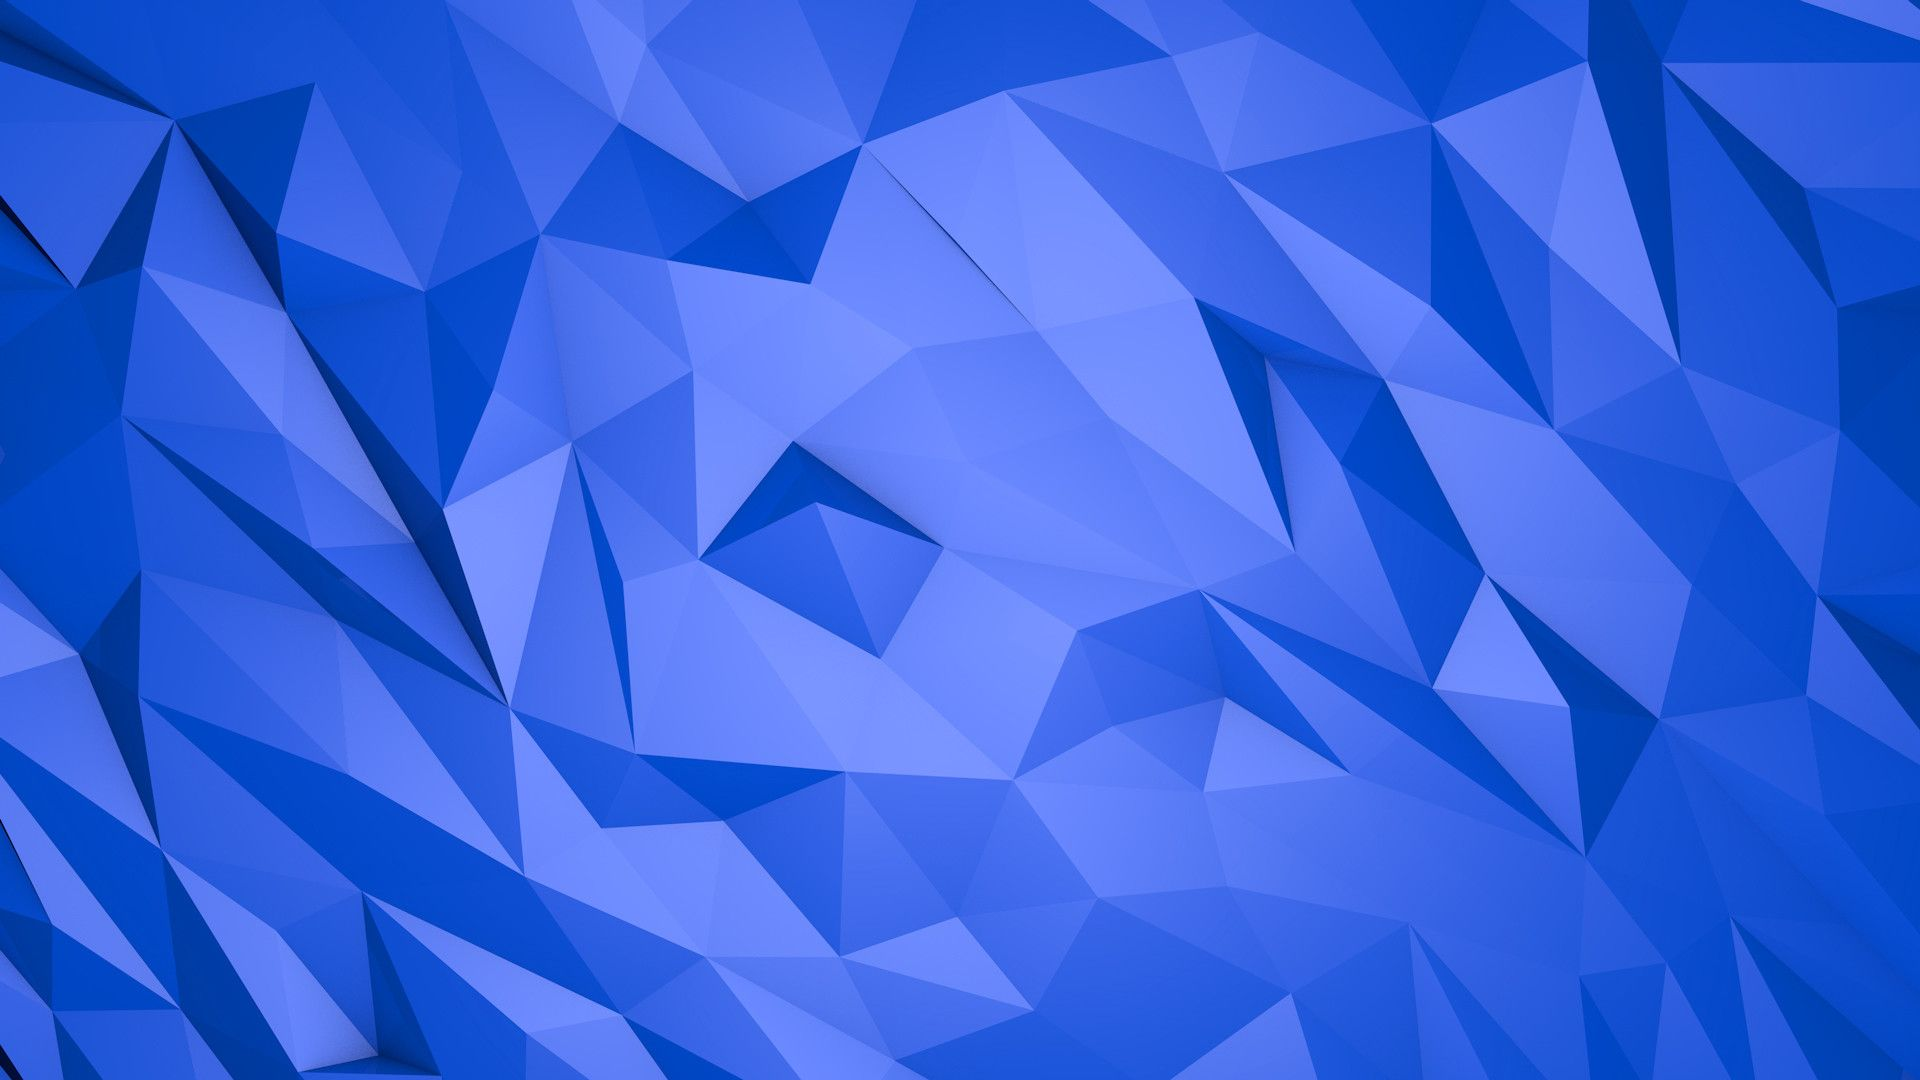 abstract blue triangles - 3d wallpaper. awesome 3d and hd rendered